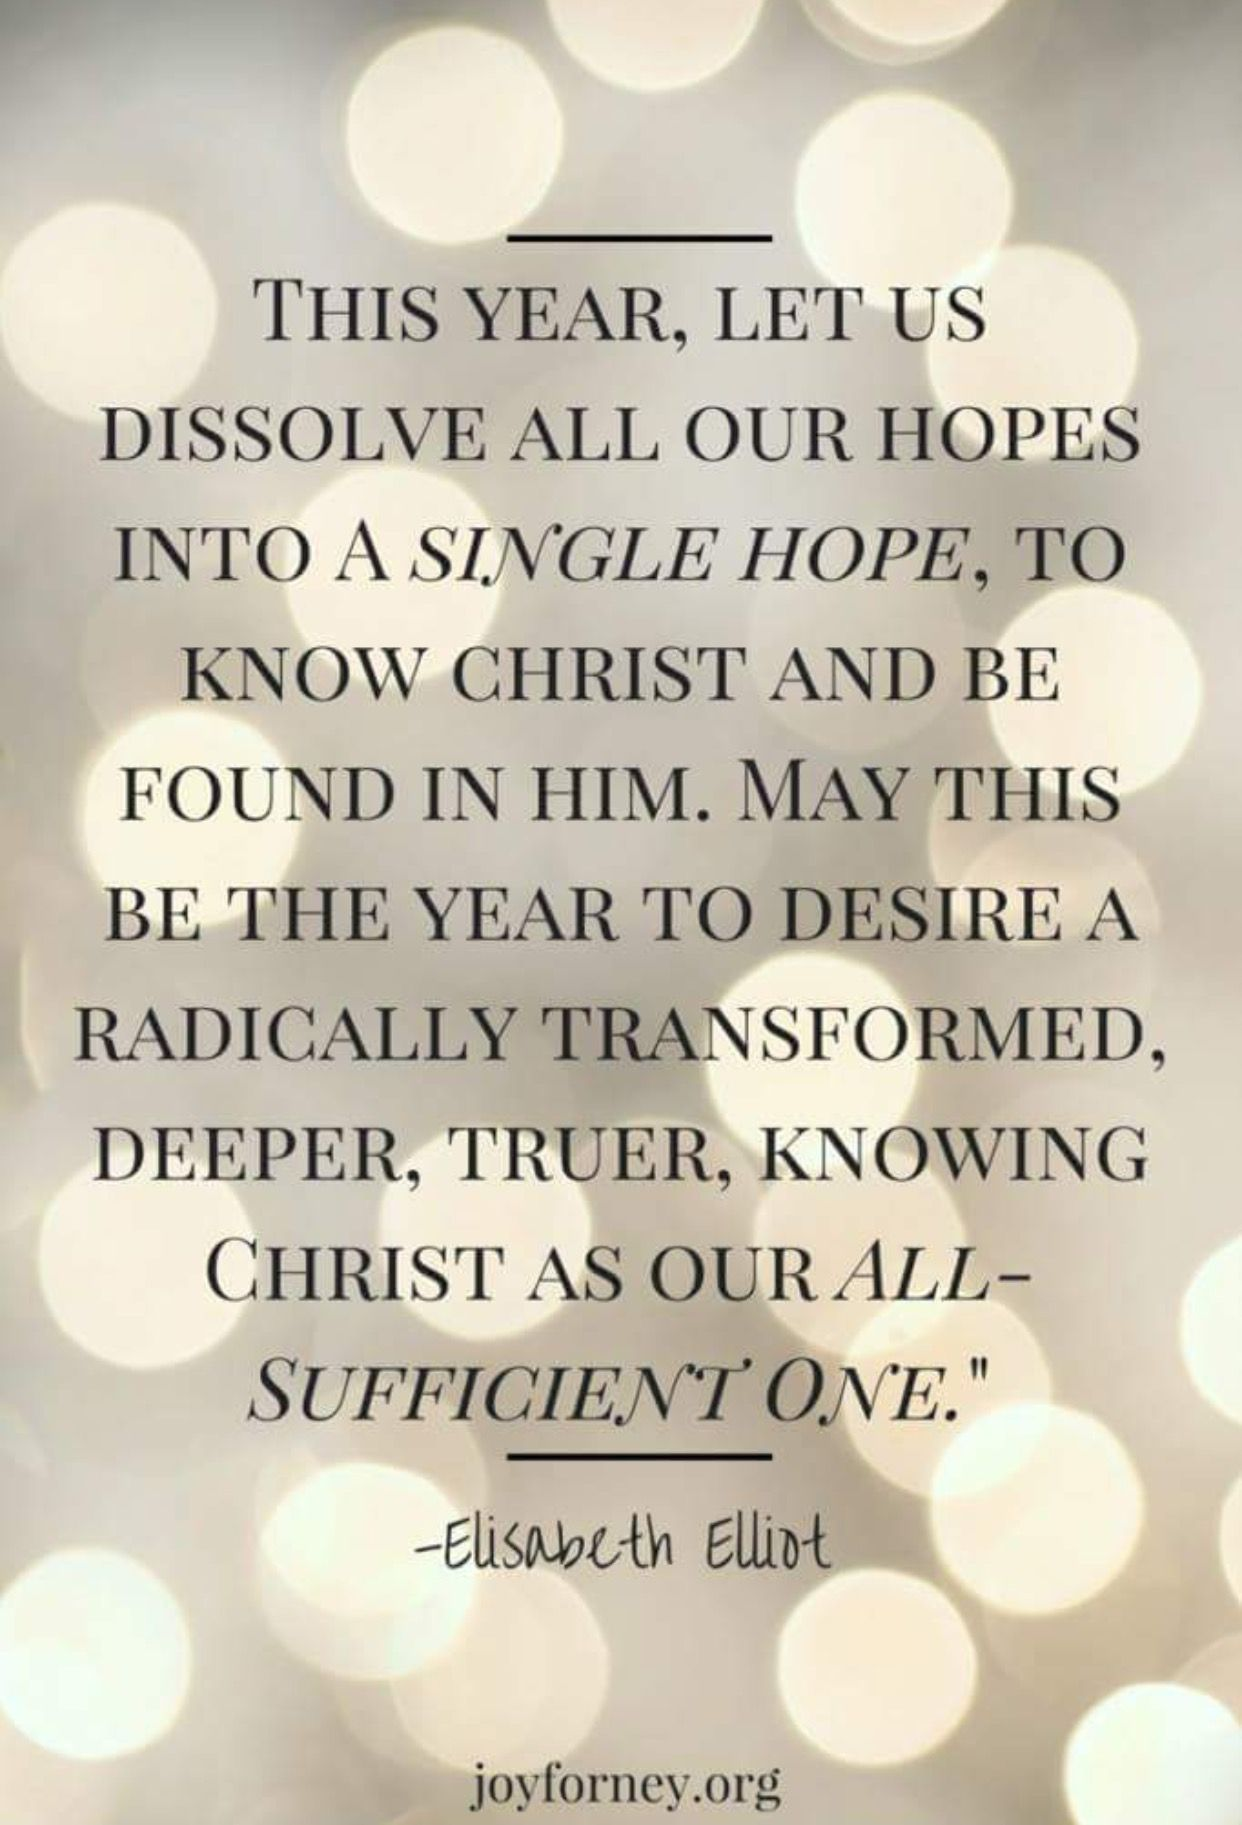 Pin By Crystal Joplin On Quotes Elisabeth Elliot Quotes Quotes About New Year Inspirational Quotes